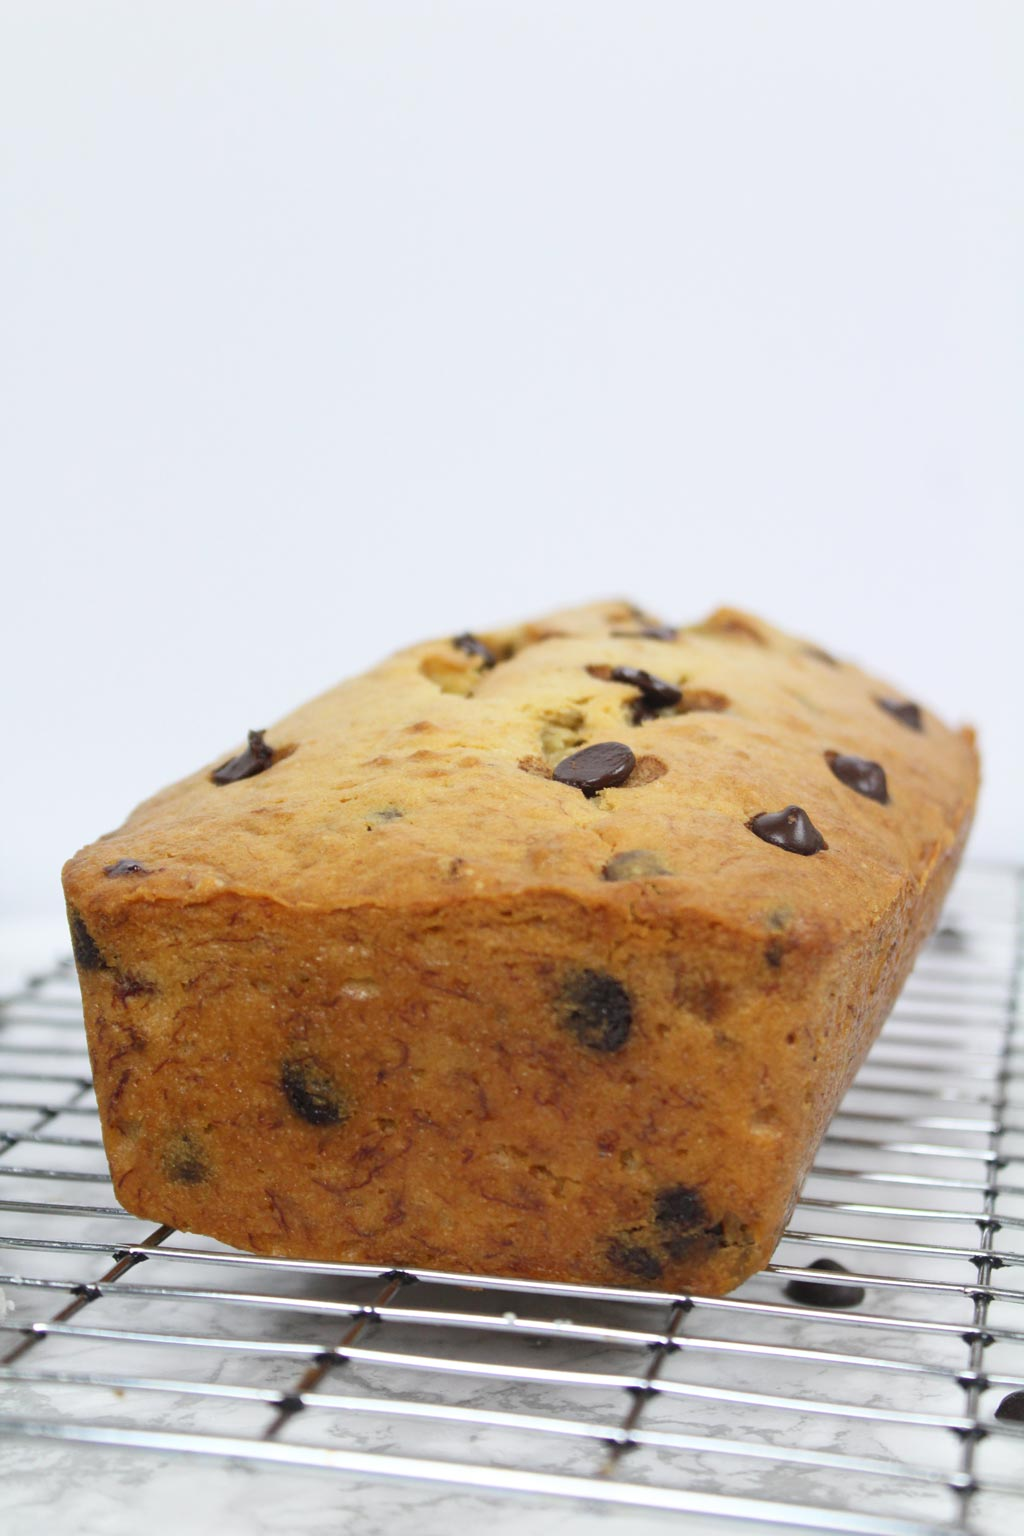 vegan choc chip banana loaf